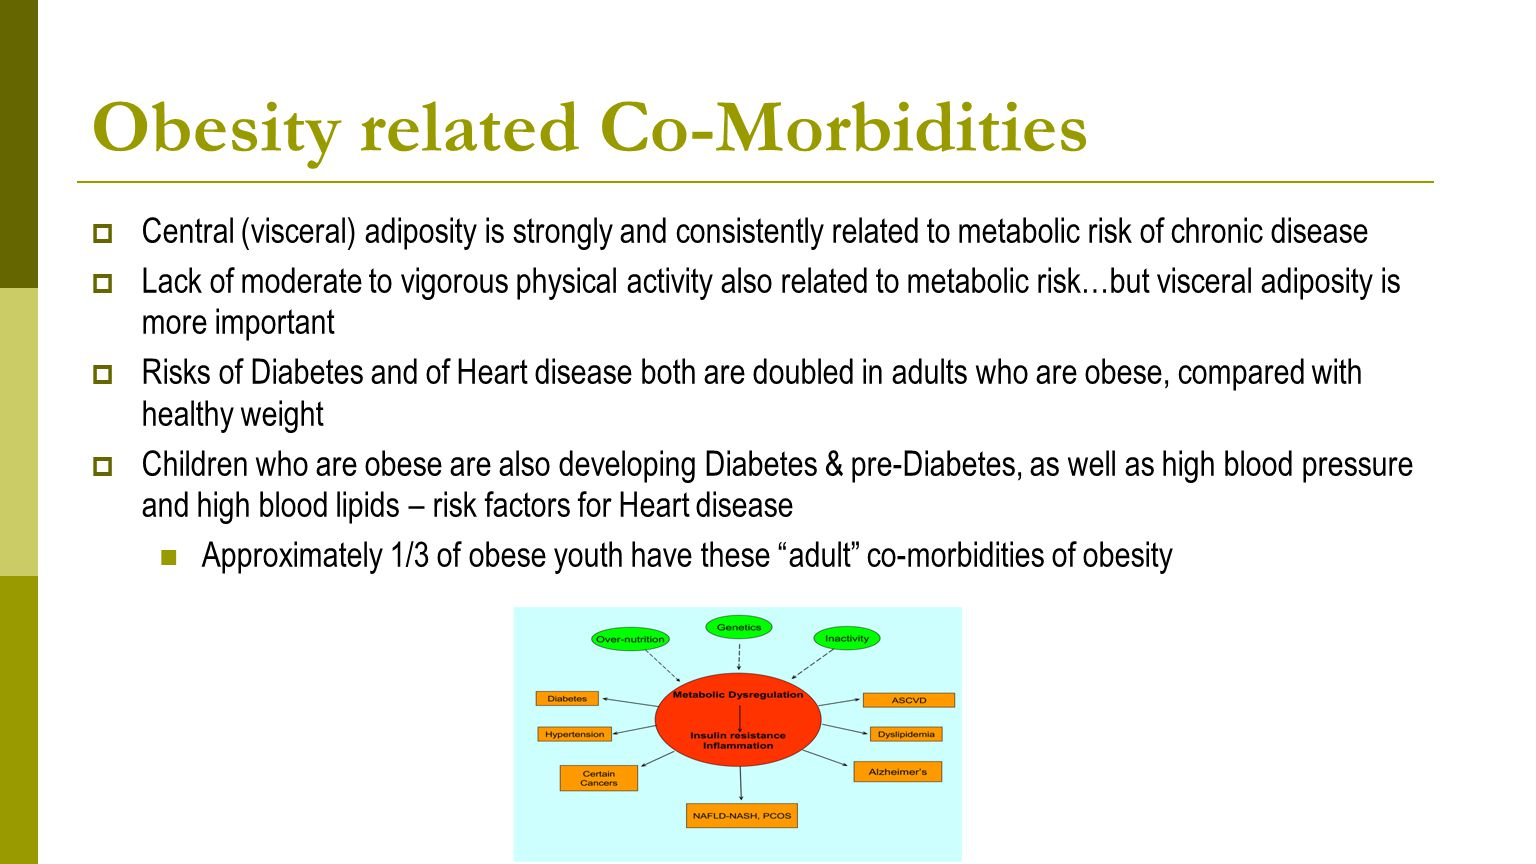 Obesity related Co-Morbidities  Central (visceral) adiposity is strongly and consistently related to metabolic risk of chronic disease  Lack of moderate to vigorous physical activity also related to metabolic risk…but visceral adiposity is more important  Risks of Diabetes and of Heart disease both are doubled in adults who are obese, compared with healthy weight  Children who are obese are also developing Diabetes & pre-Diabetes, as well as high blood pressure and high blood lipids – risk factors for Heart disease Approximately 1/3 of obese youth have these adult co-morbidities of obesity